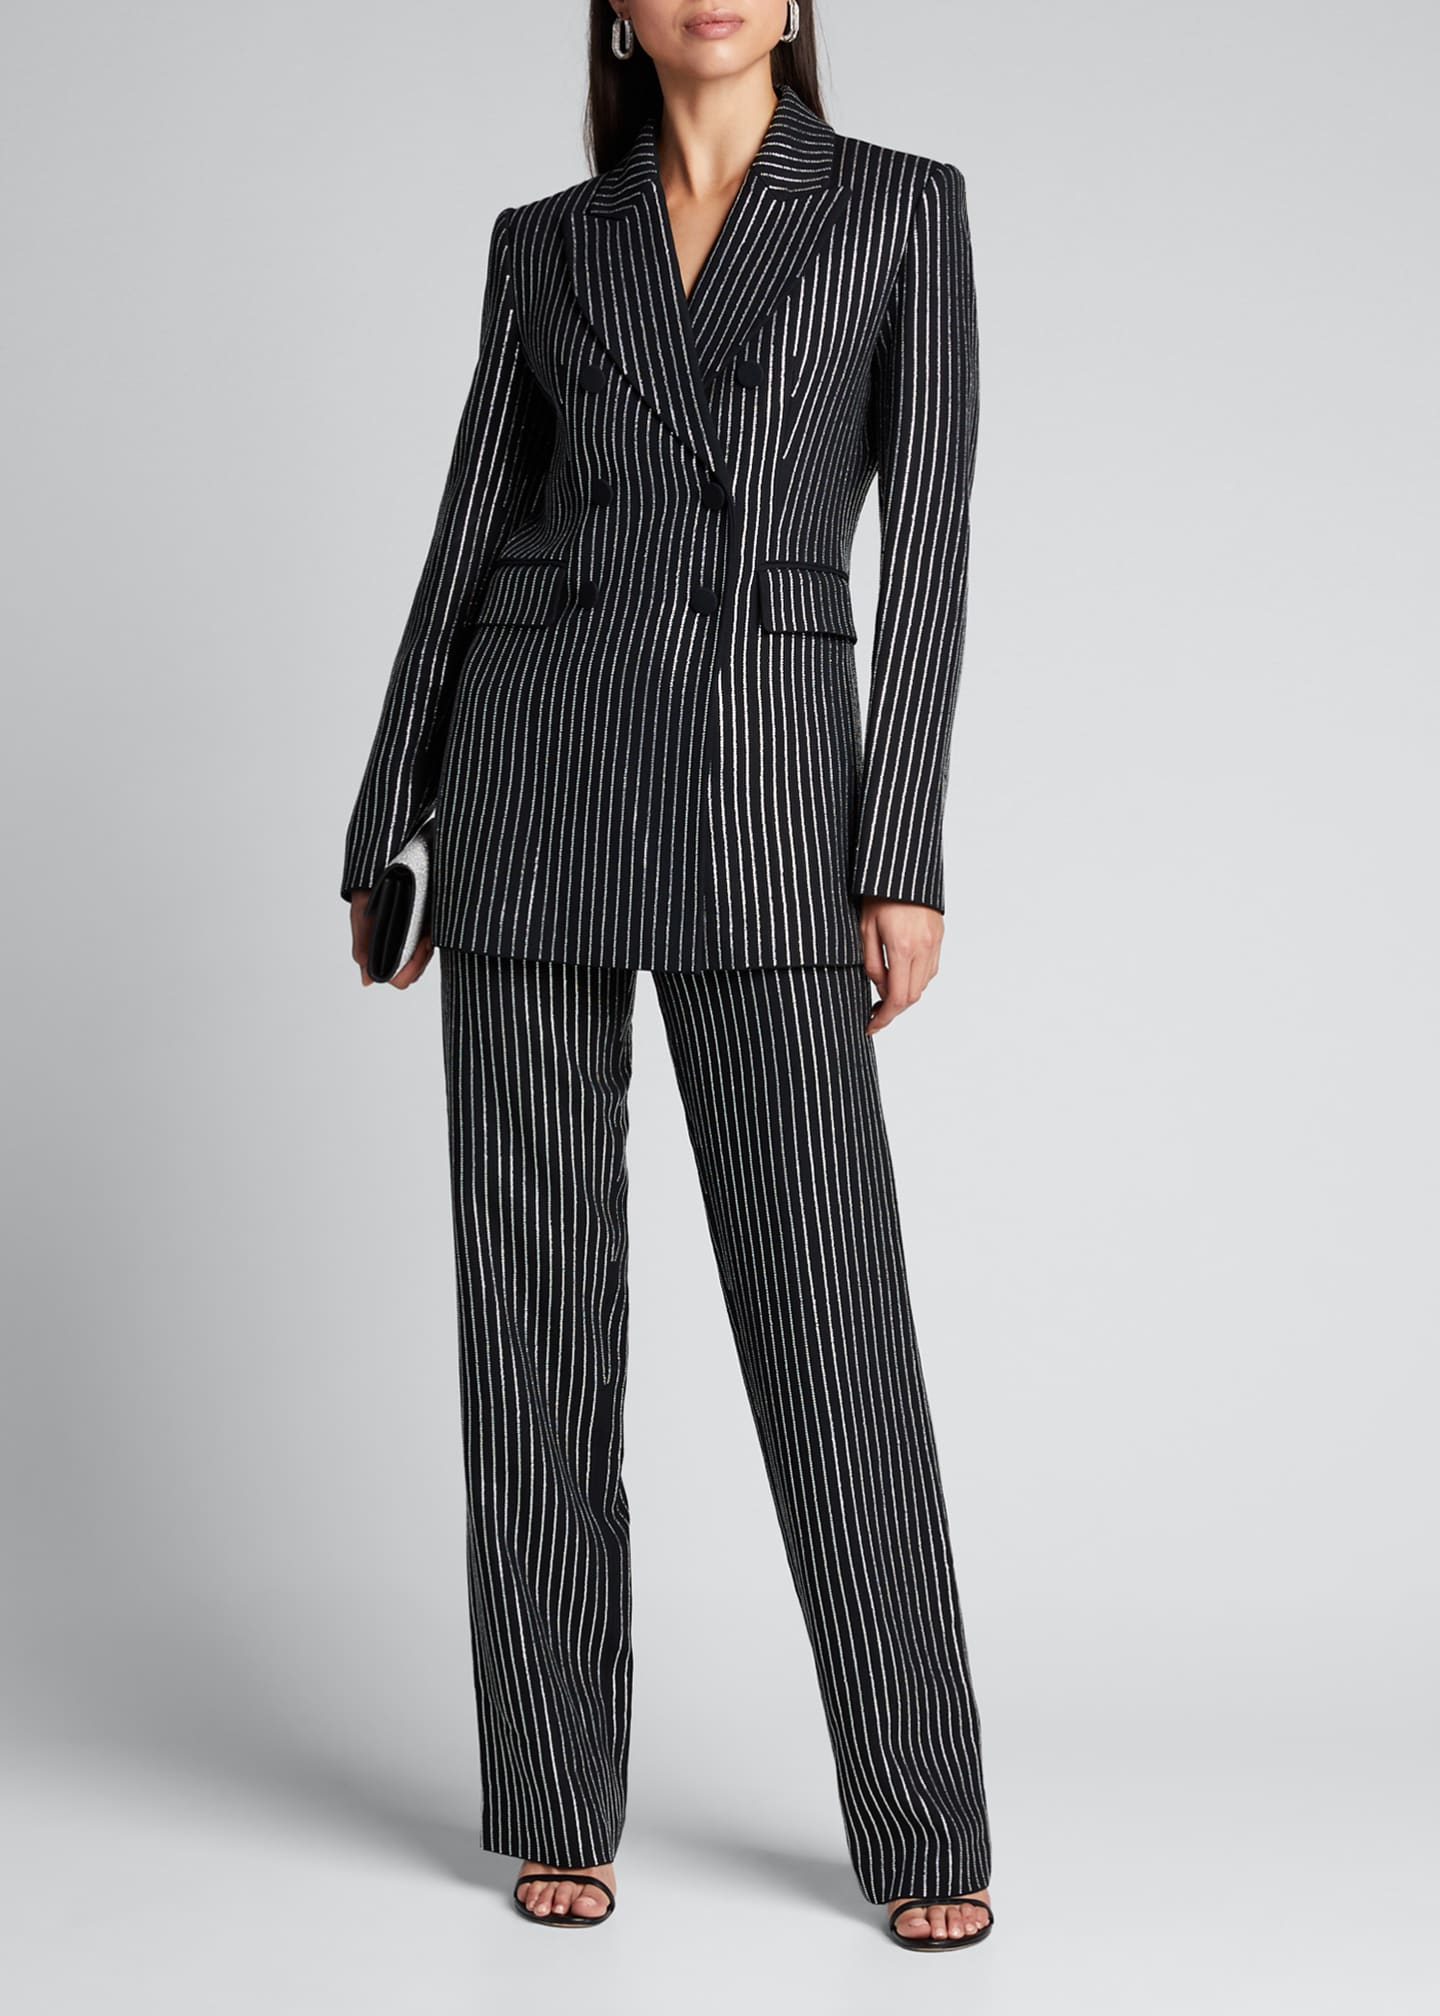 Michael Kors Collection Crystal Pinstriped Double-Breasted Dinner